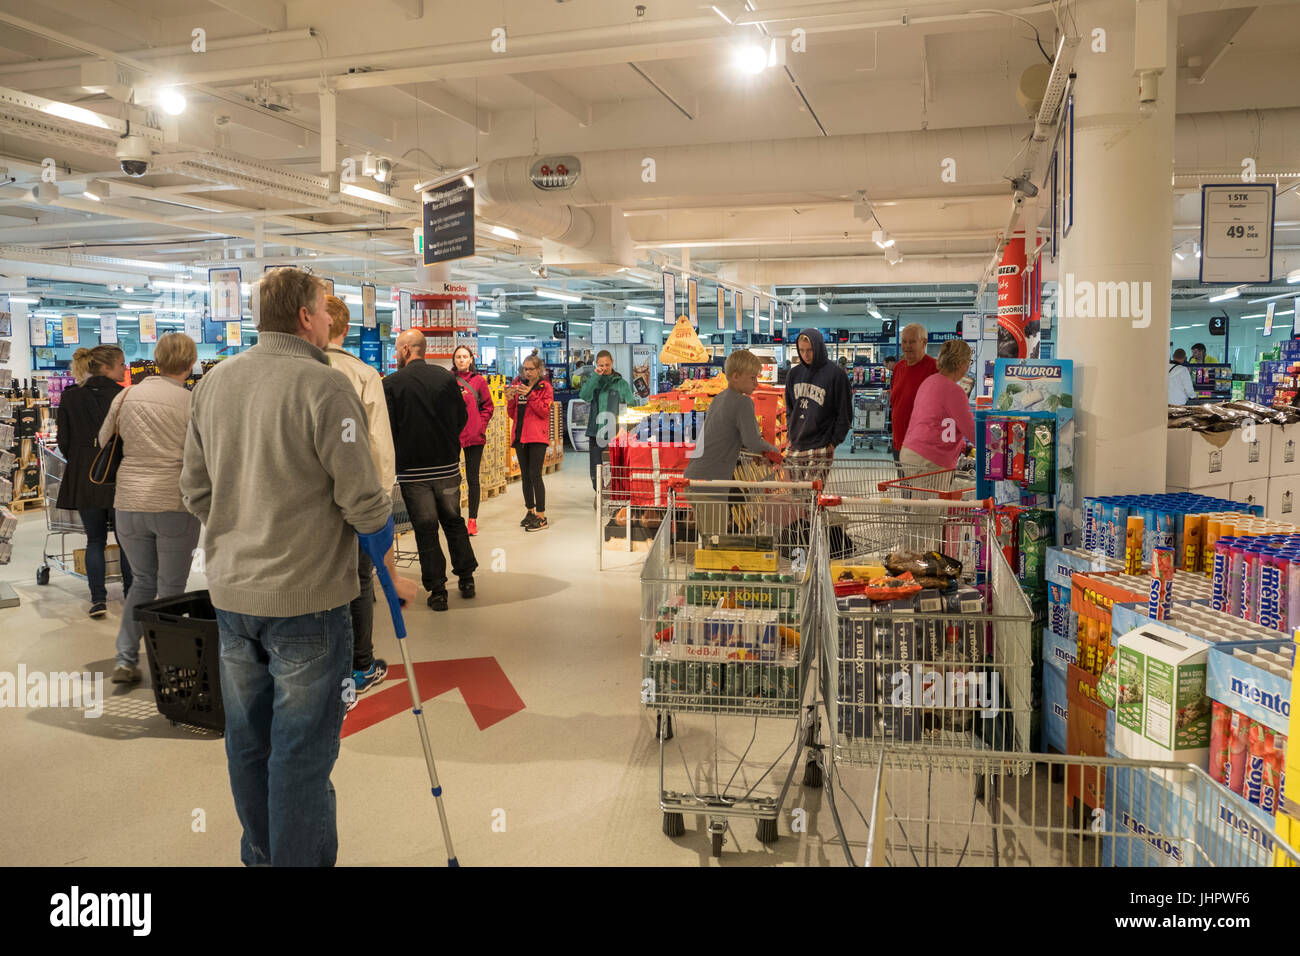 Tourists shop at BorderShop, in Puttgarden, Germany. - Stock Image